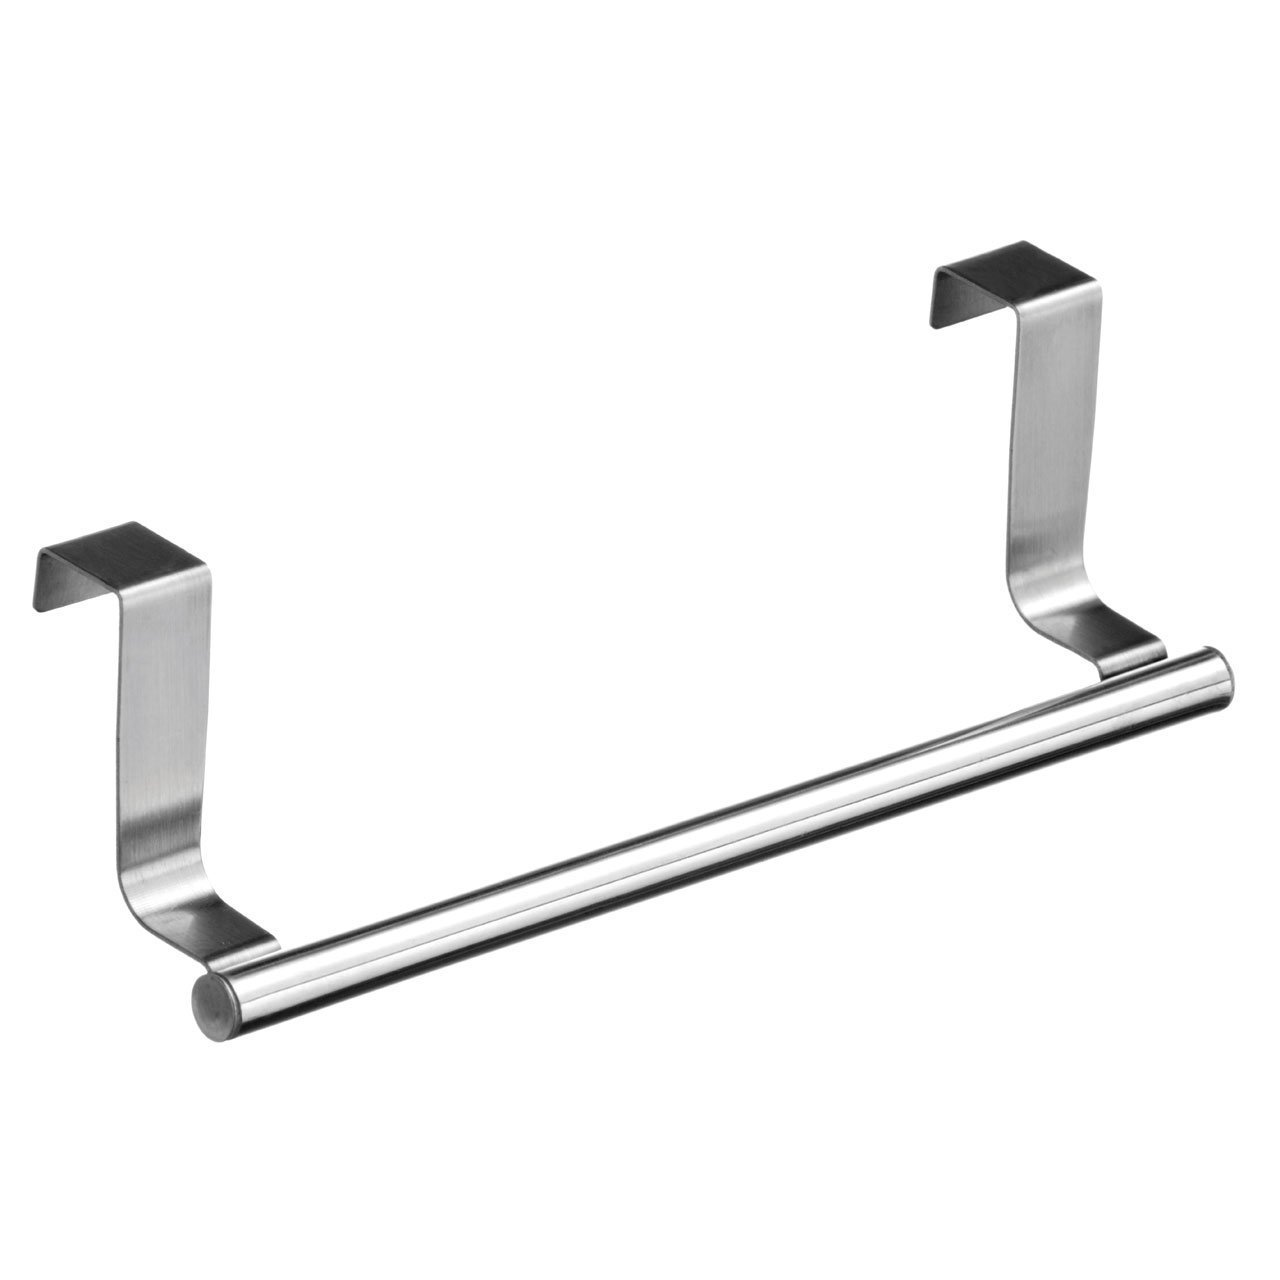 Towel Hanger Part - 19: Over Kitchen Cabinet Door Tea Hand Towel Rail Holder Hanger Storage:  Amazon.co.uk: Kitchen U0026 Home